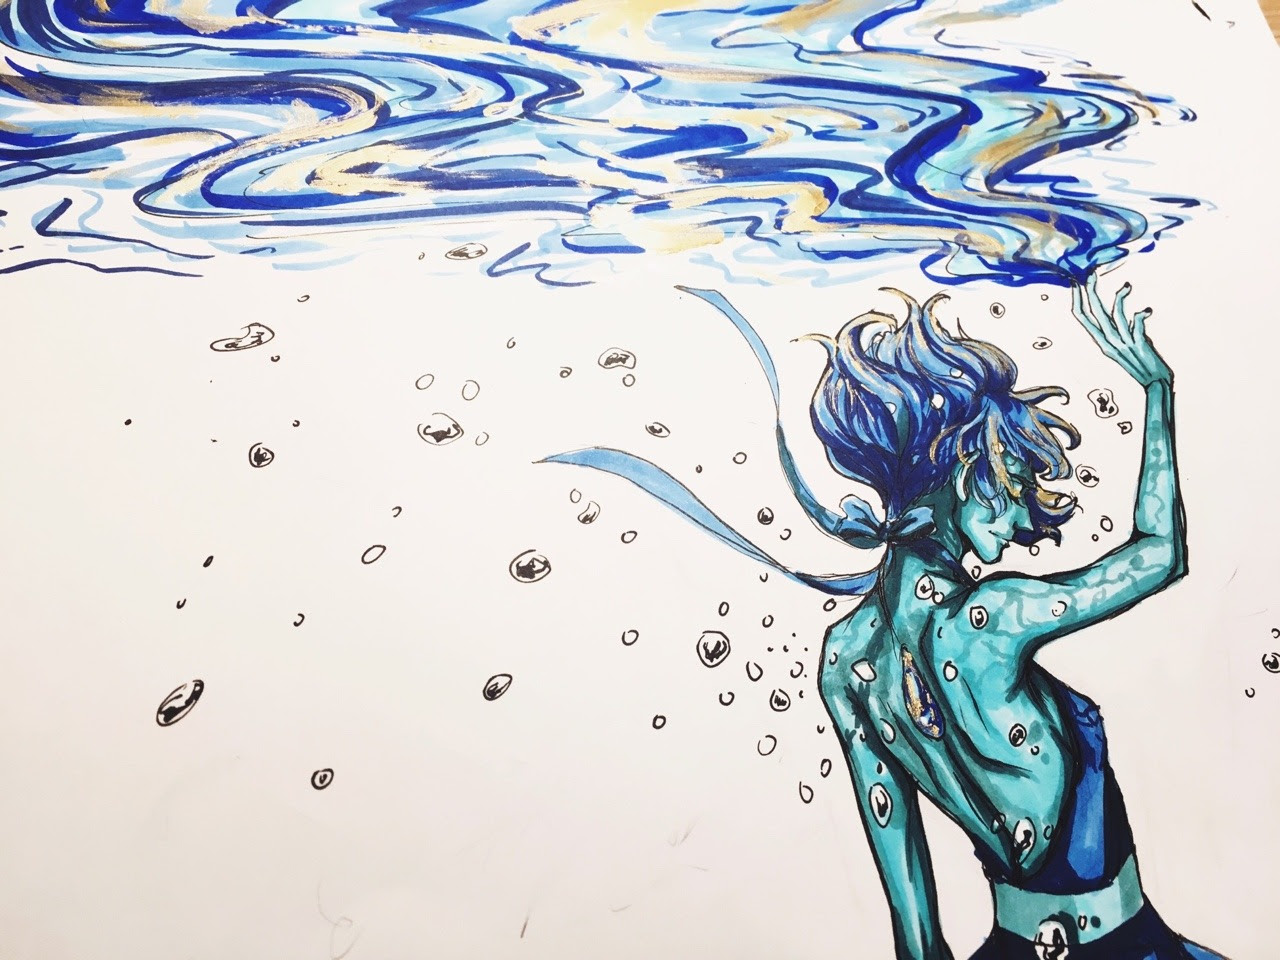 Inktober 13 I'm still 3 days behind and this is starting to get frustrating :/. But I actually looked up images of lapis lazuli and apparently it contain gold streaks (very sad the character designers...